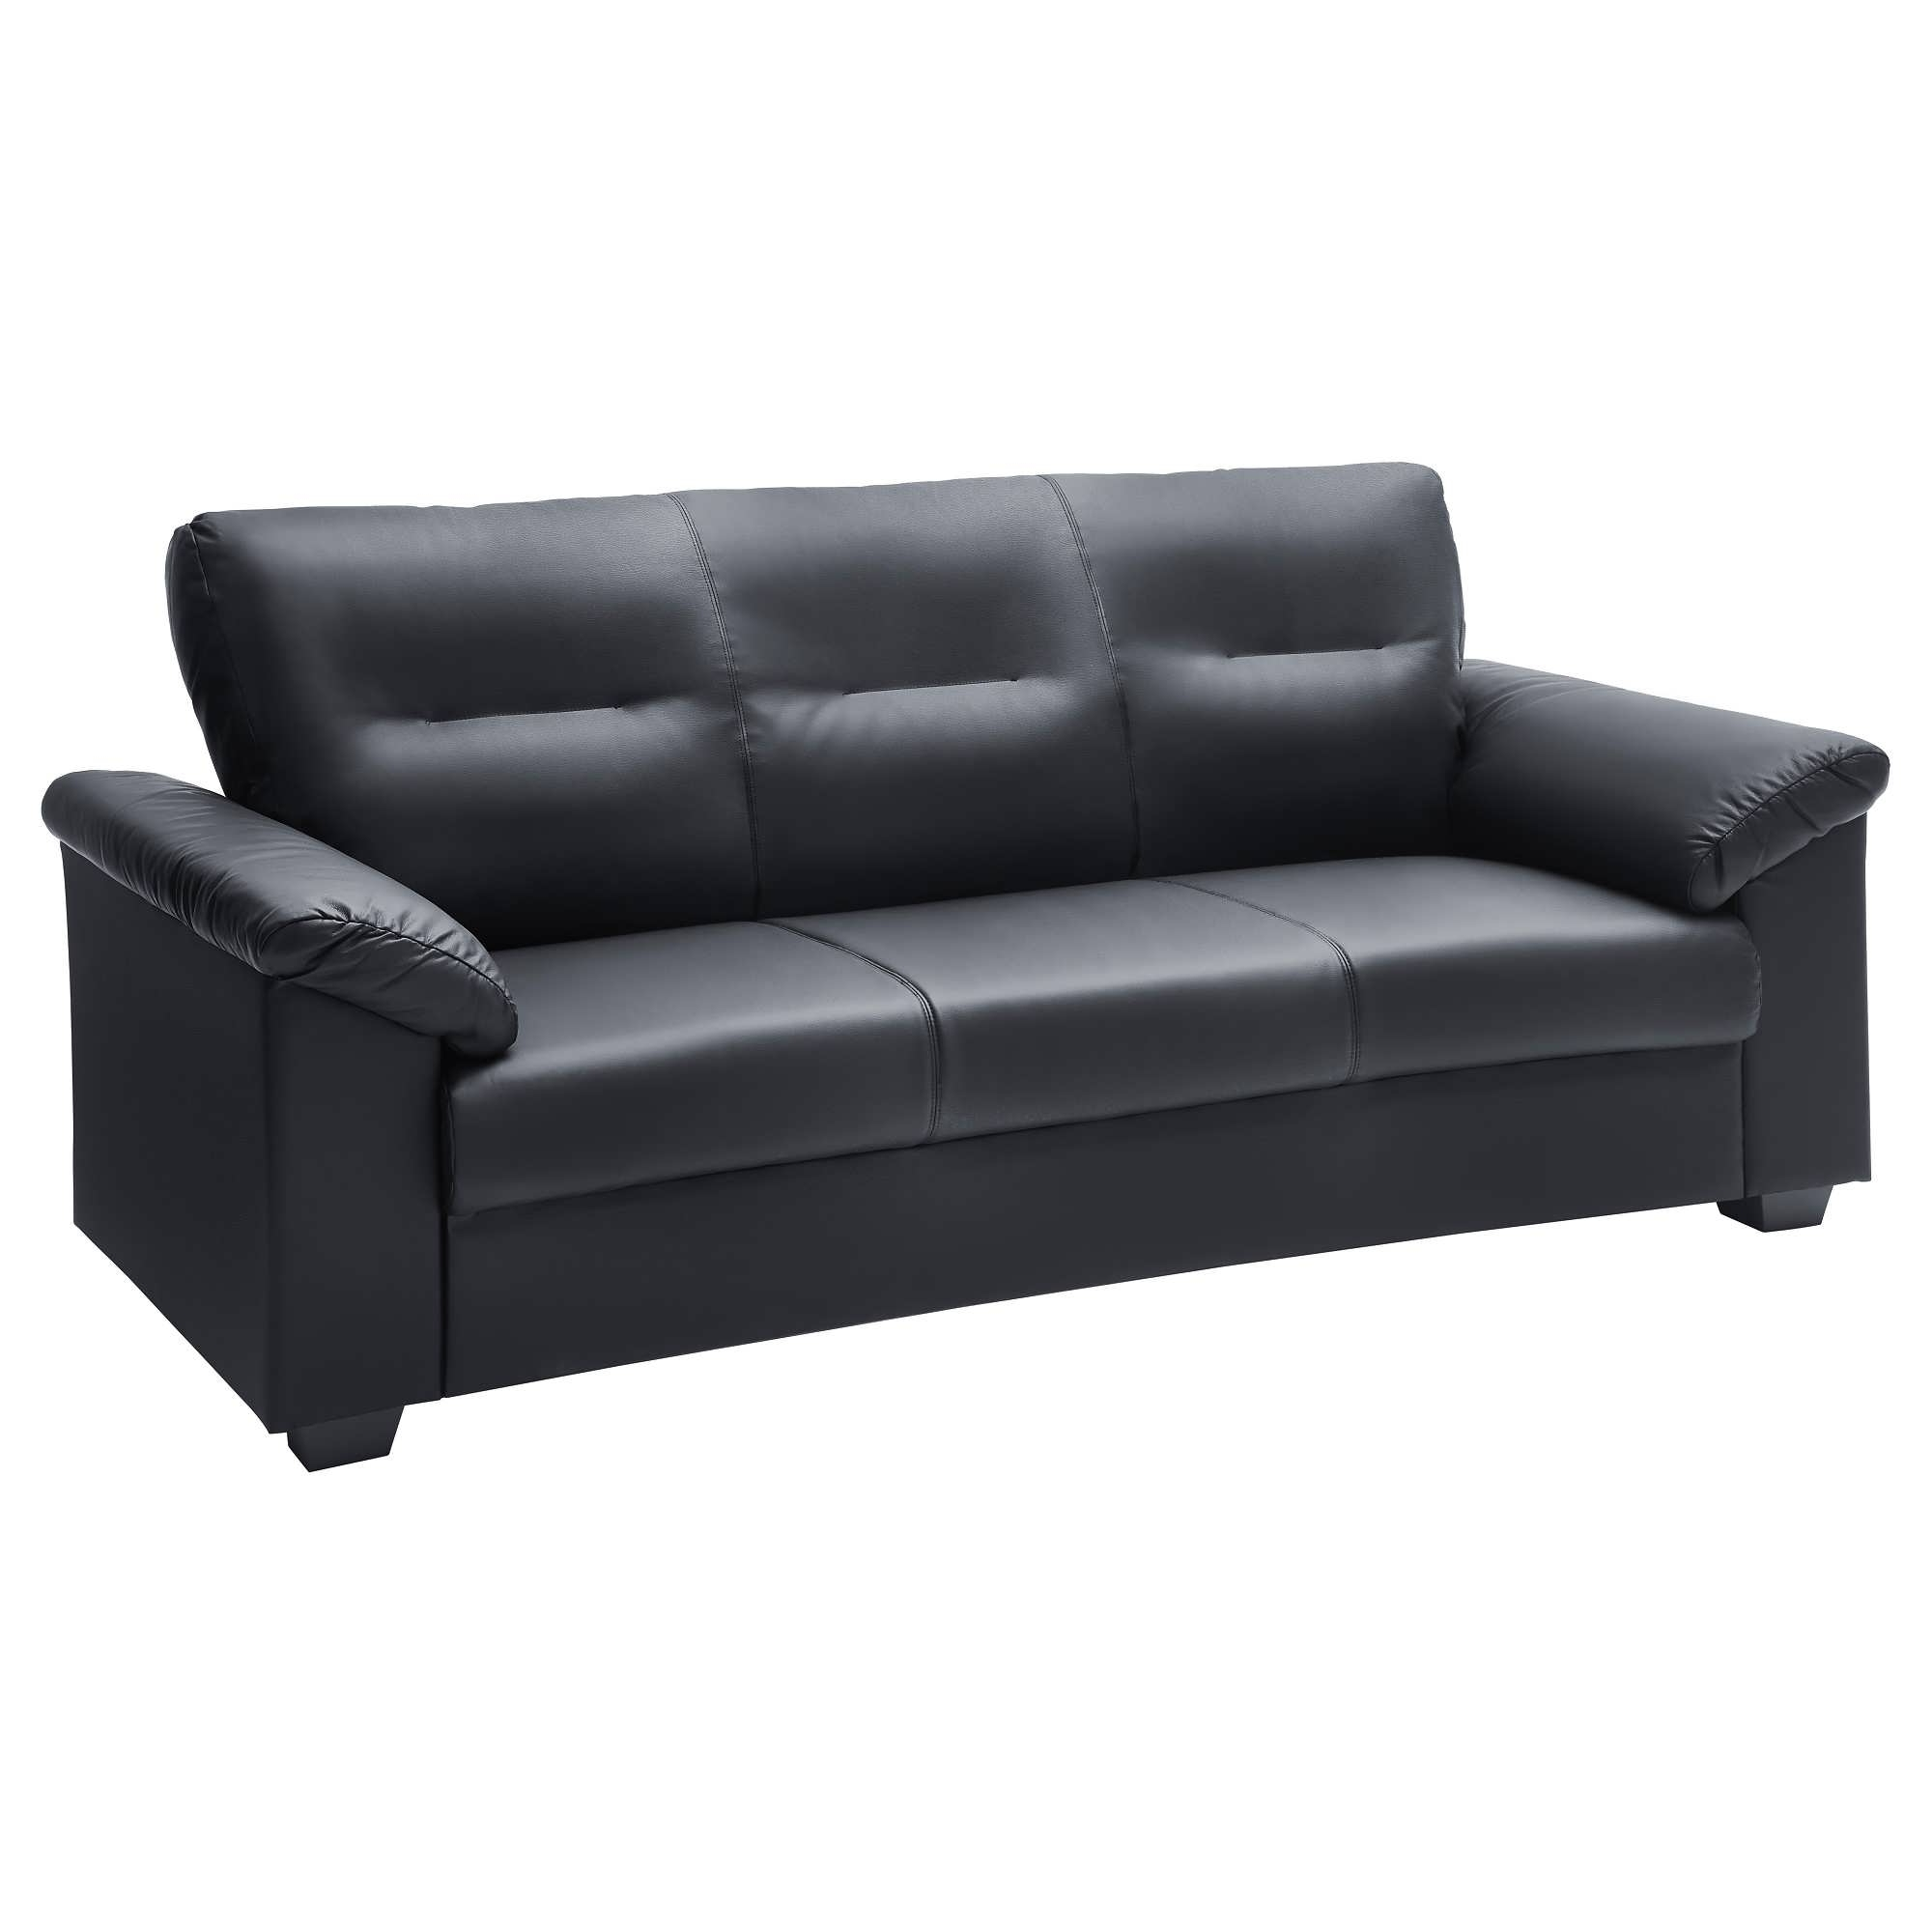 Sofa : Modular Sectional Leather Chaise Sofa Contemporary Pertaining To Latest Small Chaise Sofas (View 9 of 15)